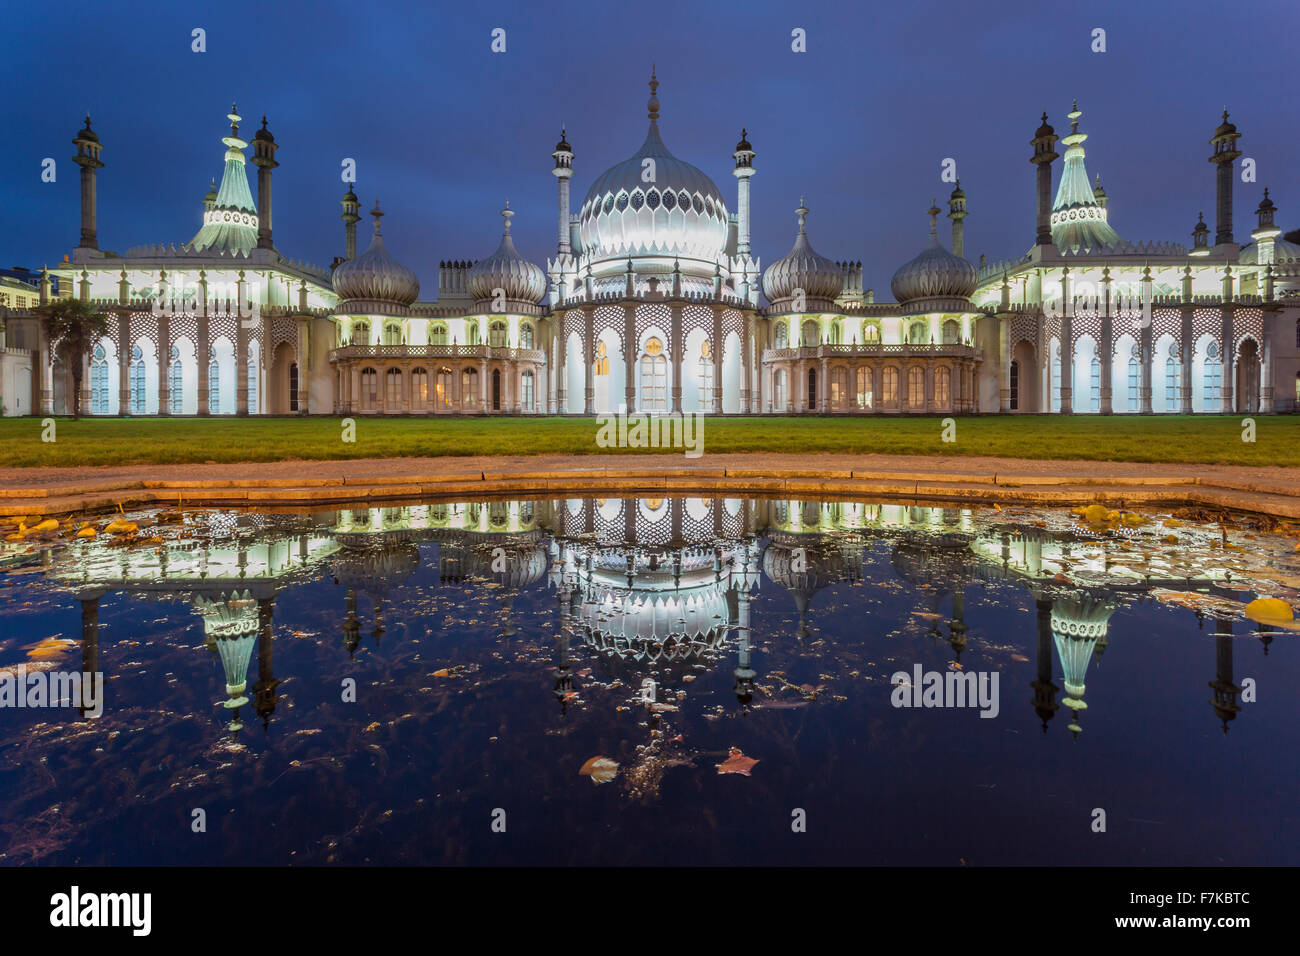 Serata al Royal Pavilion in Brighton, East Sussex, Inghilterra. Immagini Stock